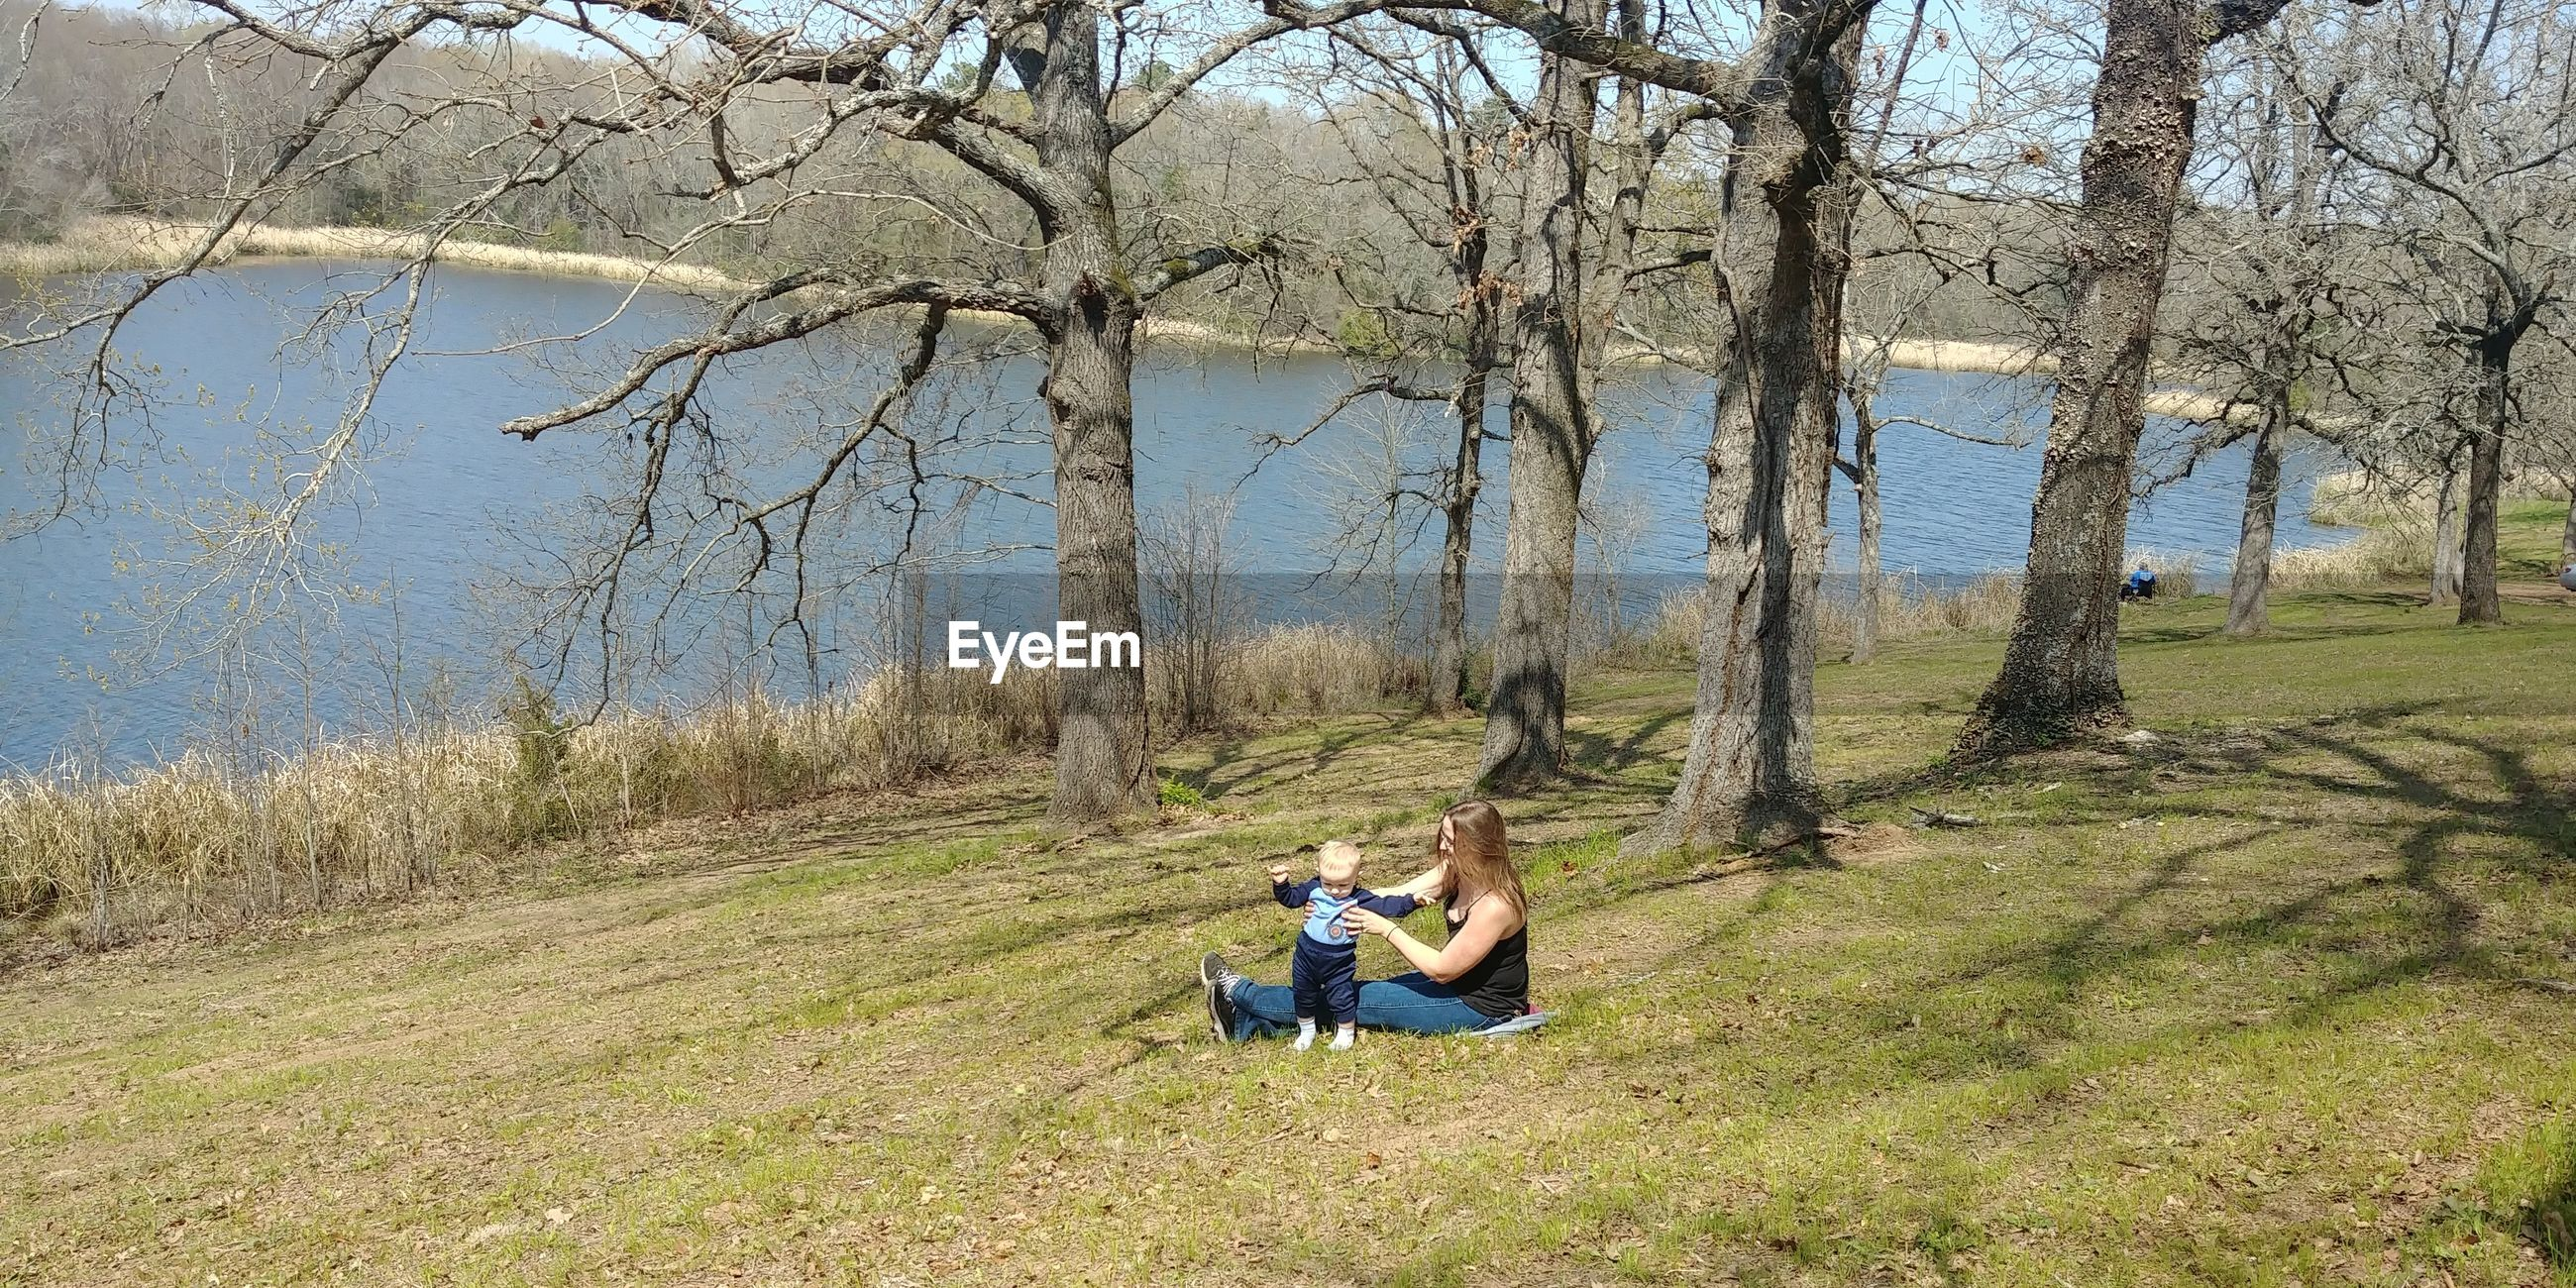 People sitting on grass by trees and lake